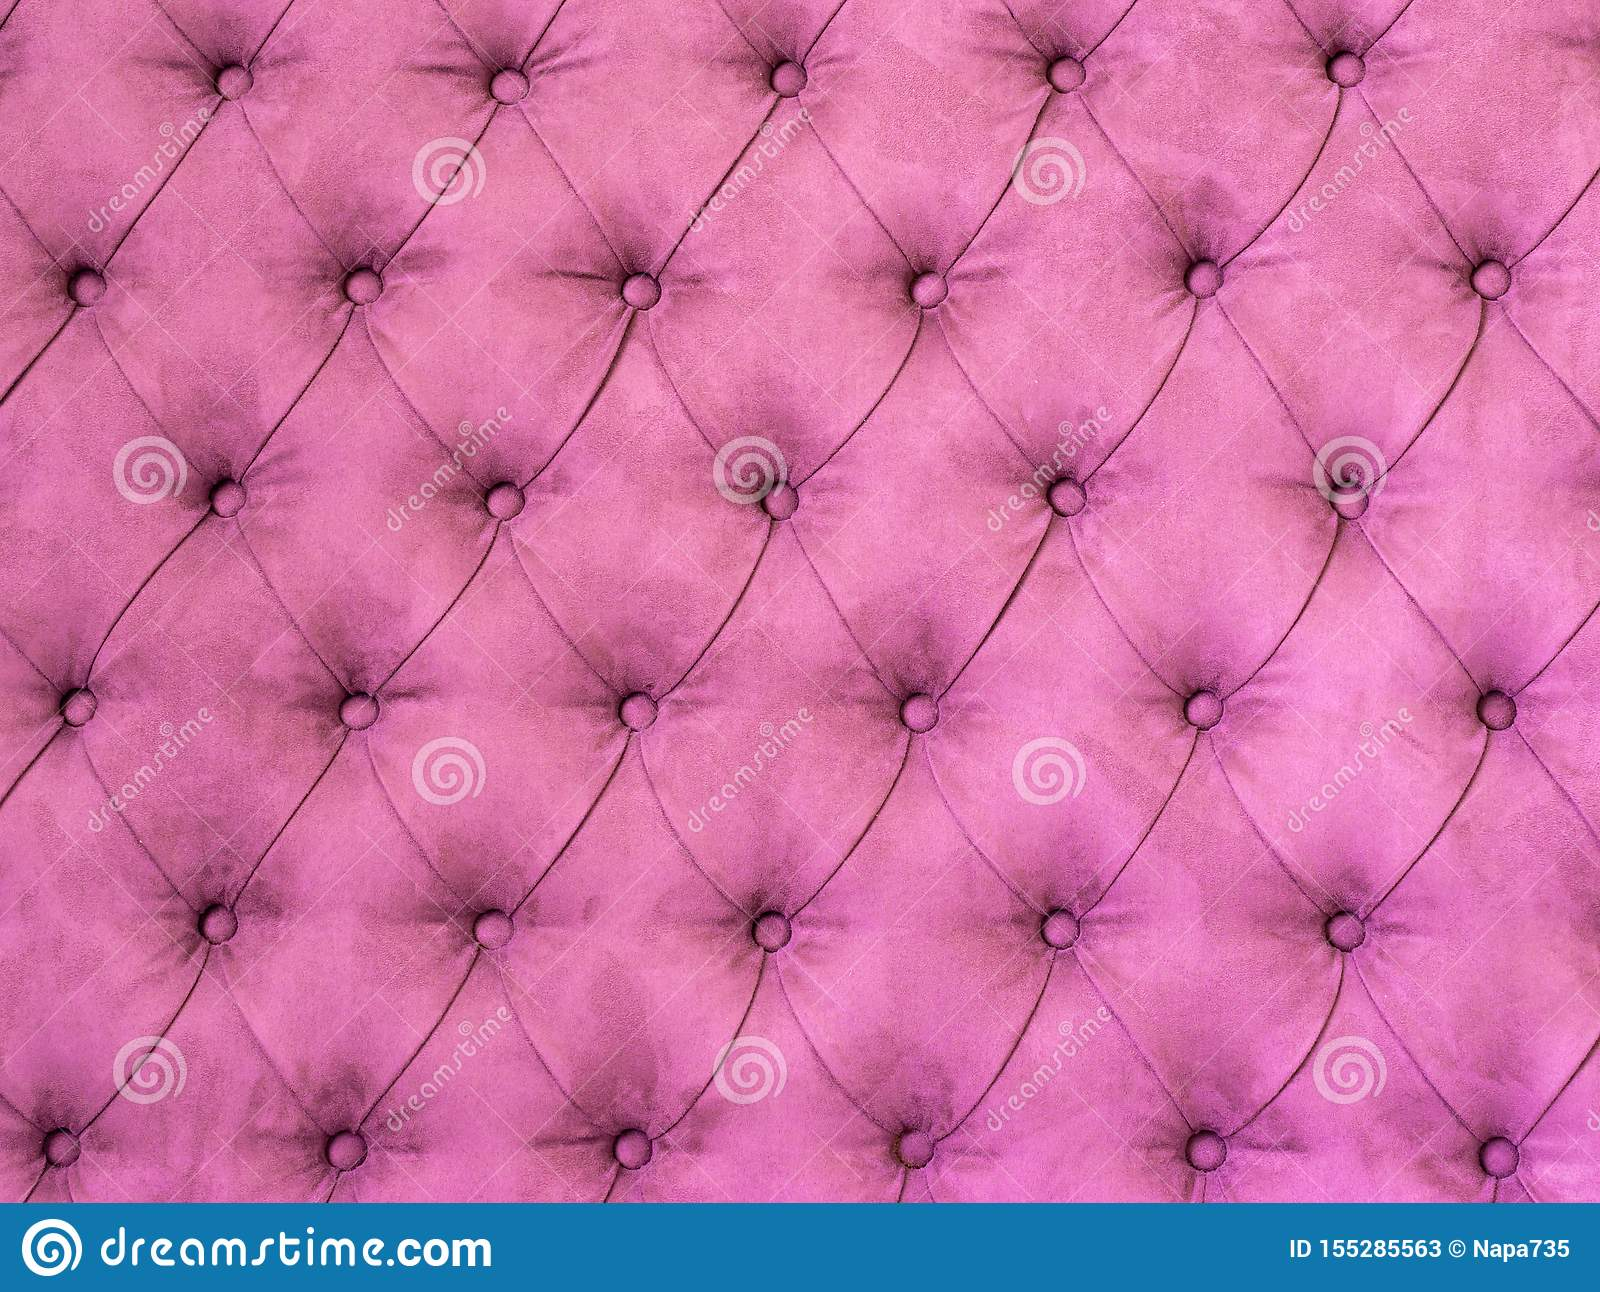 Background With Pink Upholstered Old Fashioned Furniture Textile Stock Image Image Of Color Factory 155285563